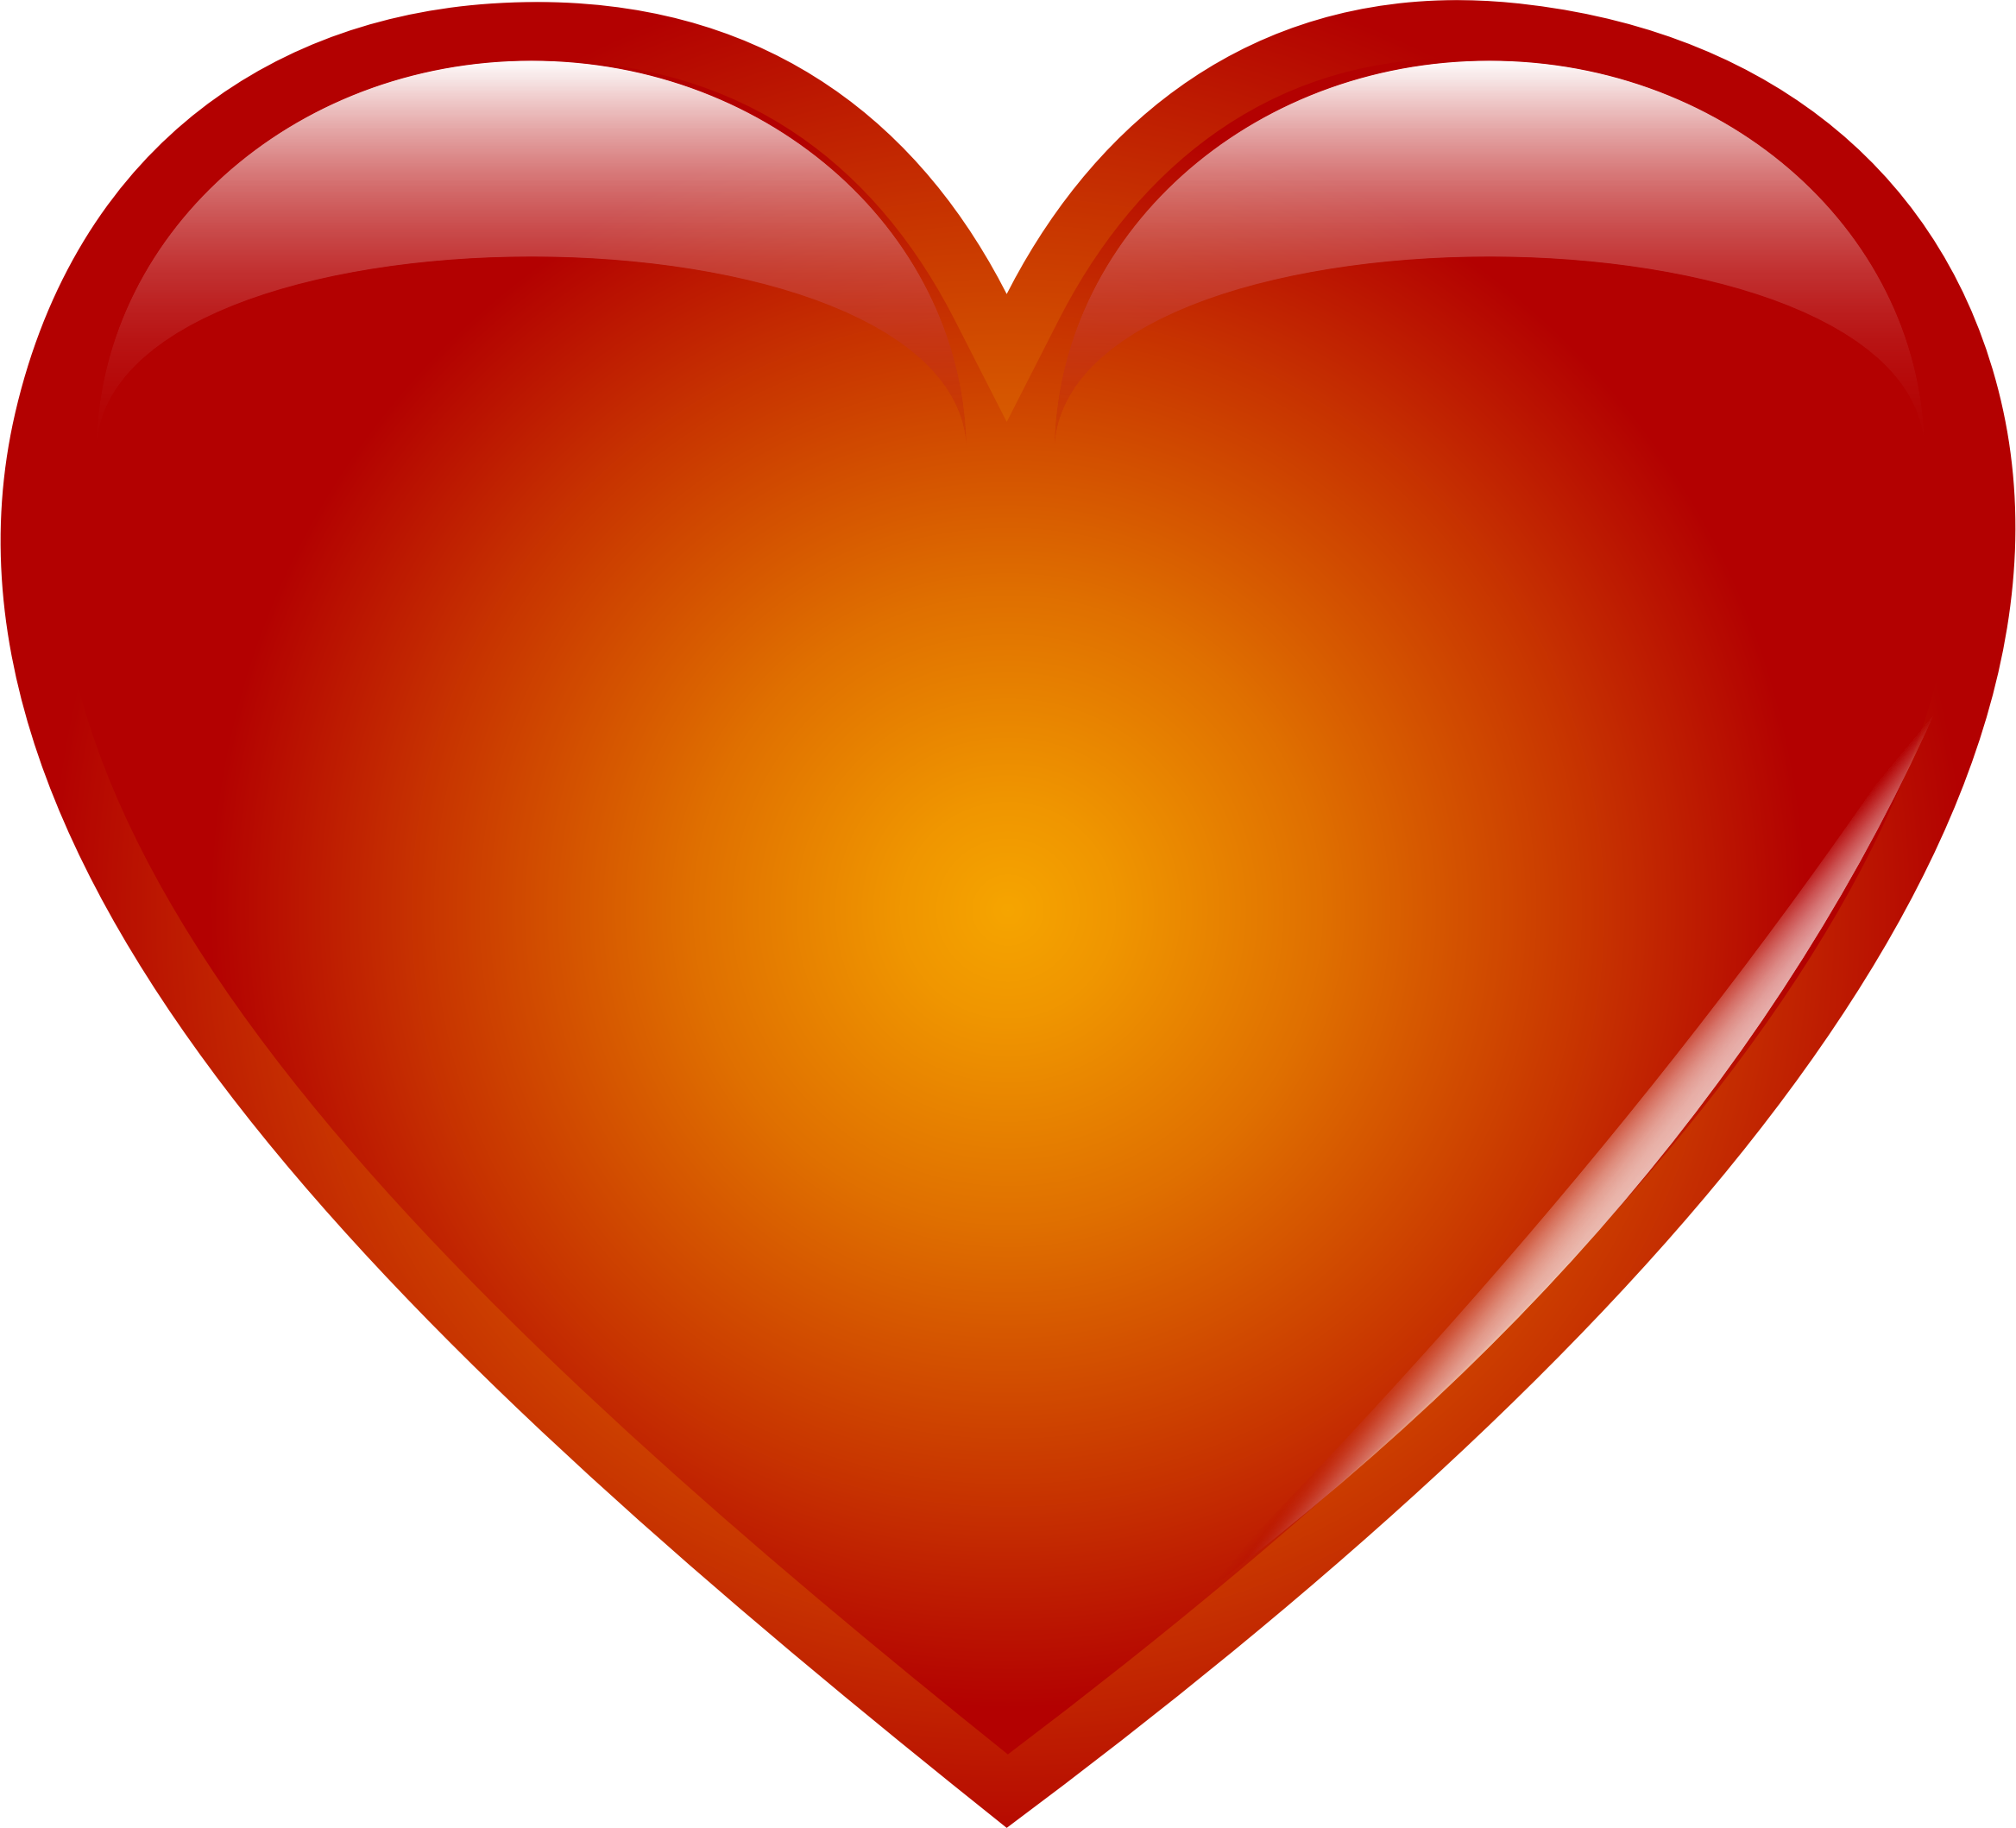 Hearts clipart favorite Heart Red Heart Red Clipart